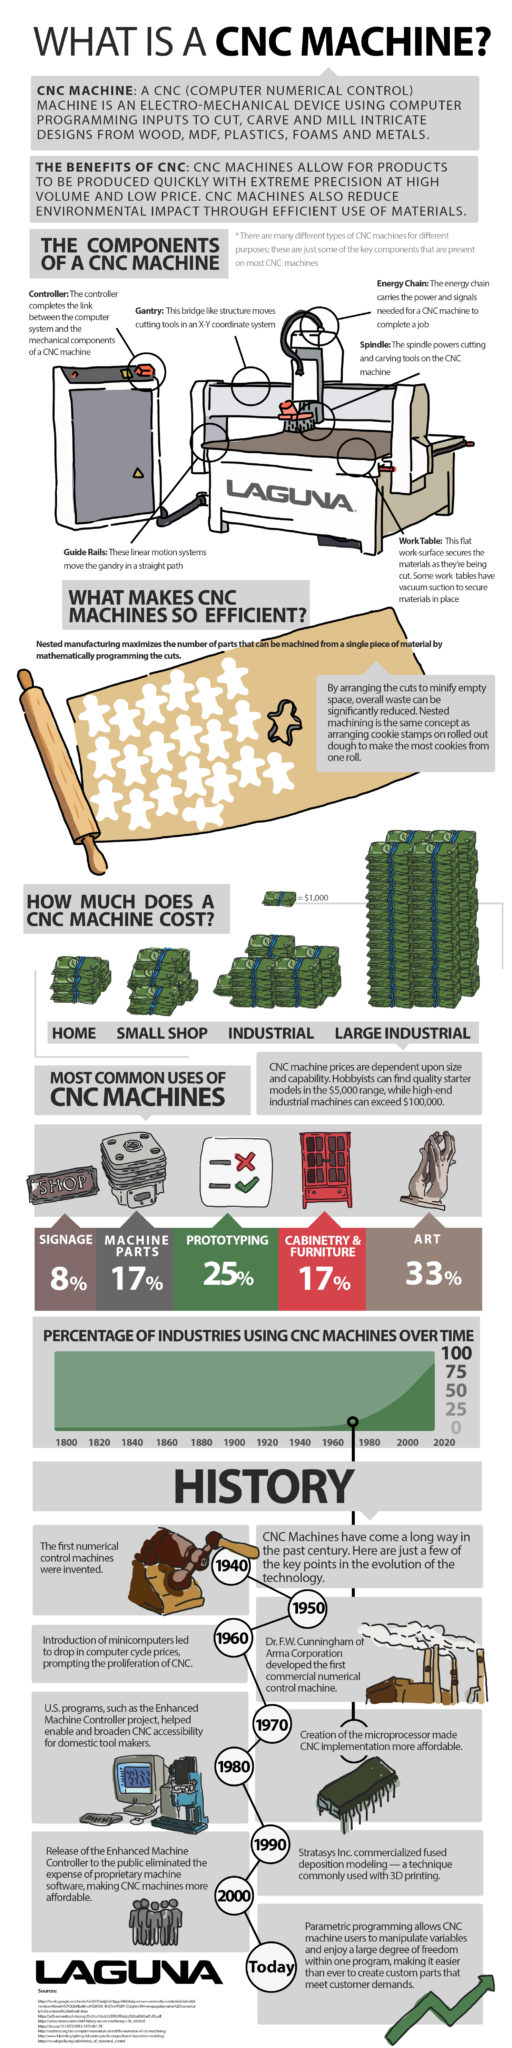 what is a cnc machine infographic